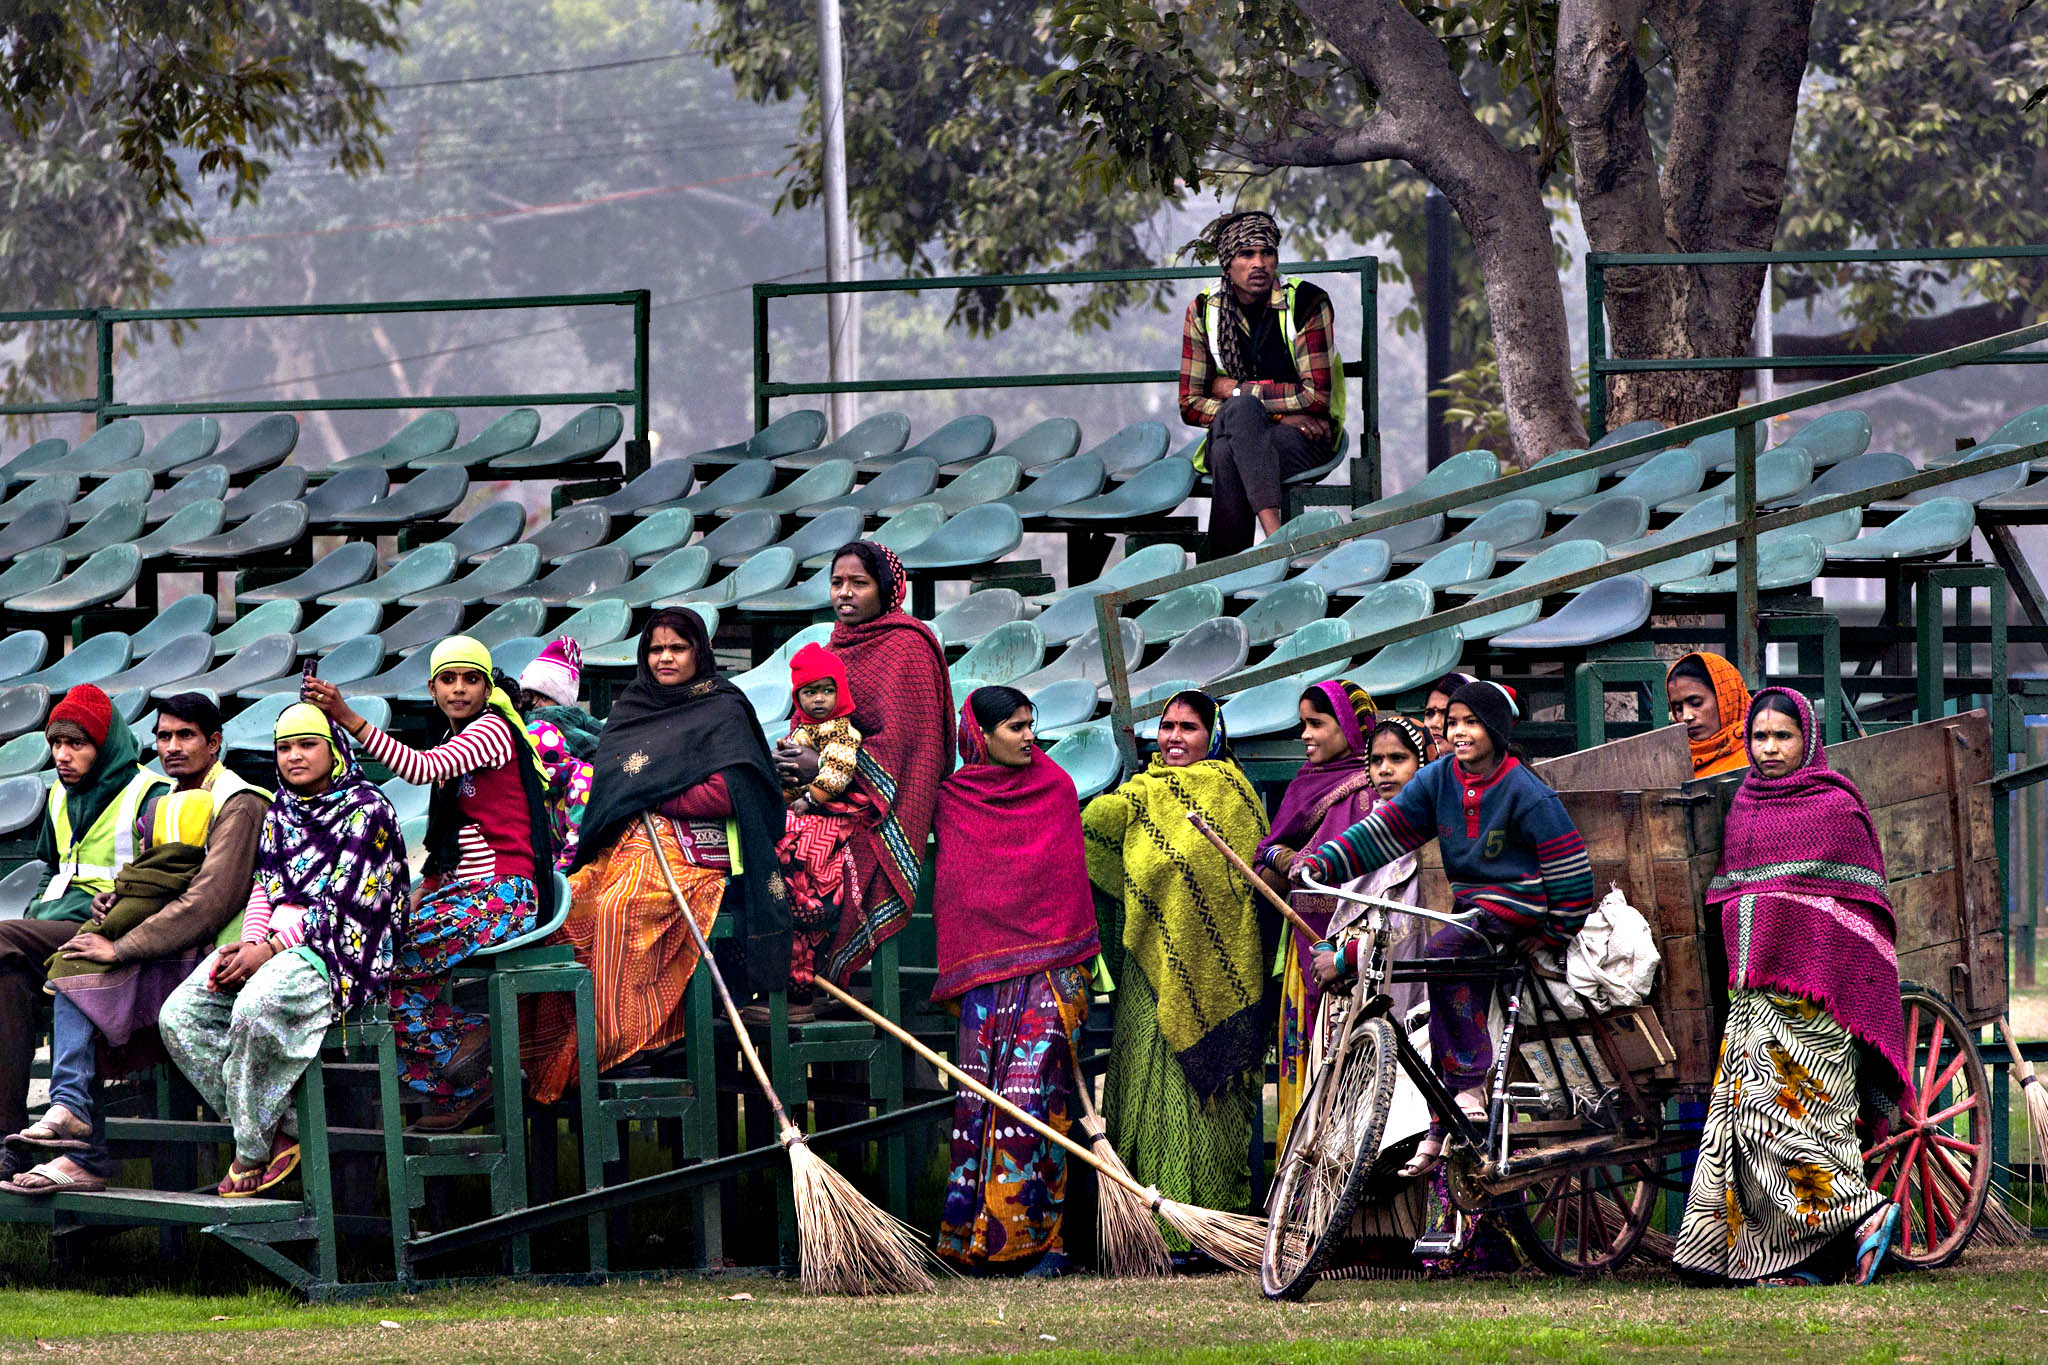 Indian sweepers and laborers take time out to watch different branches of Indian military practice a march past as they rehearse to participate in the Republic Day parade in New Delhi, India, Wednesday, Jan. 20, 2016. India celebrates Republic Day on Jan. 26 every year, highlighted by a march past by different branches of the military as well as a display of arms and missiles.